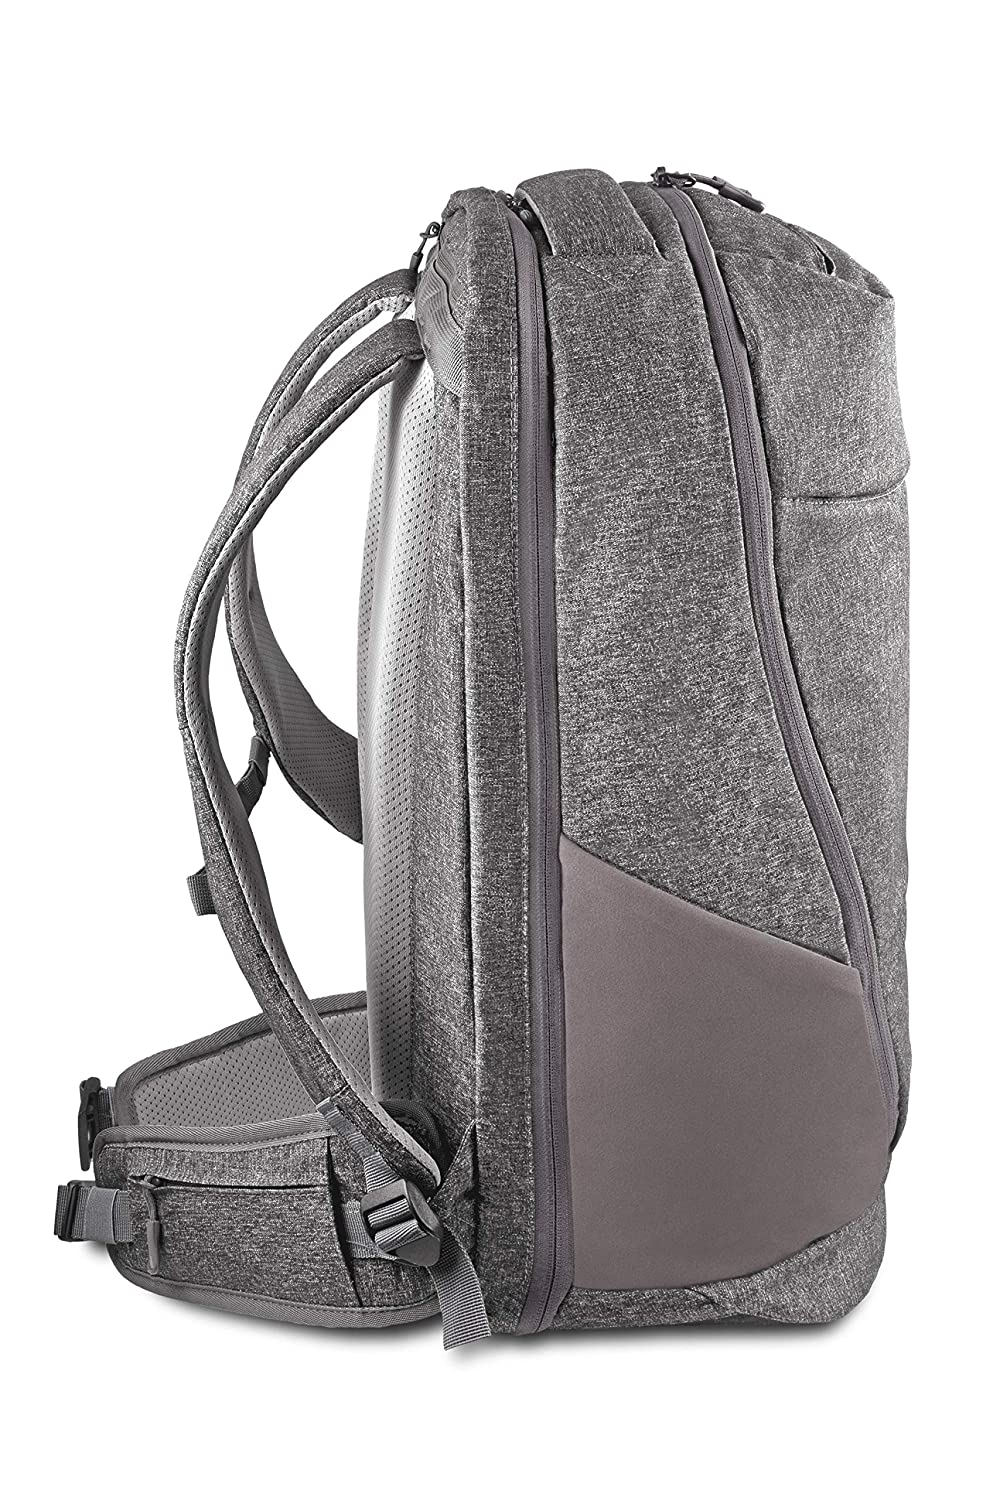 Arcido Akra Backpack Carry-on Size Laptop Backpack with Removable Harness TSA Compliant American Airlines Carry On